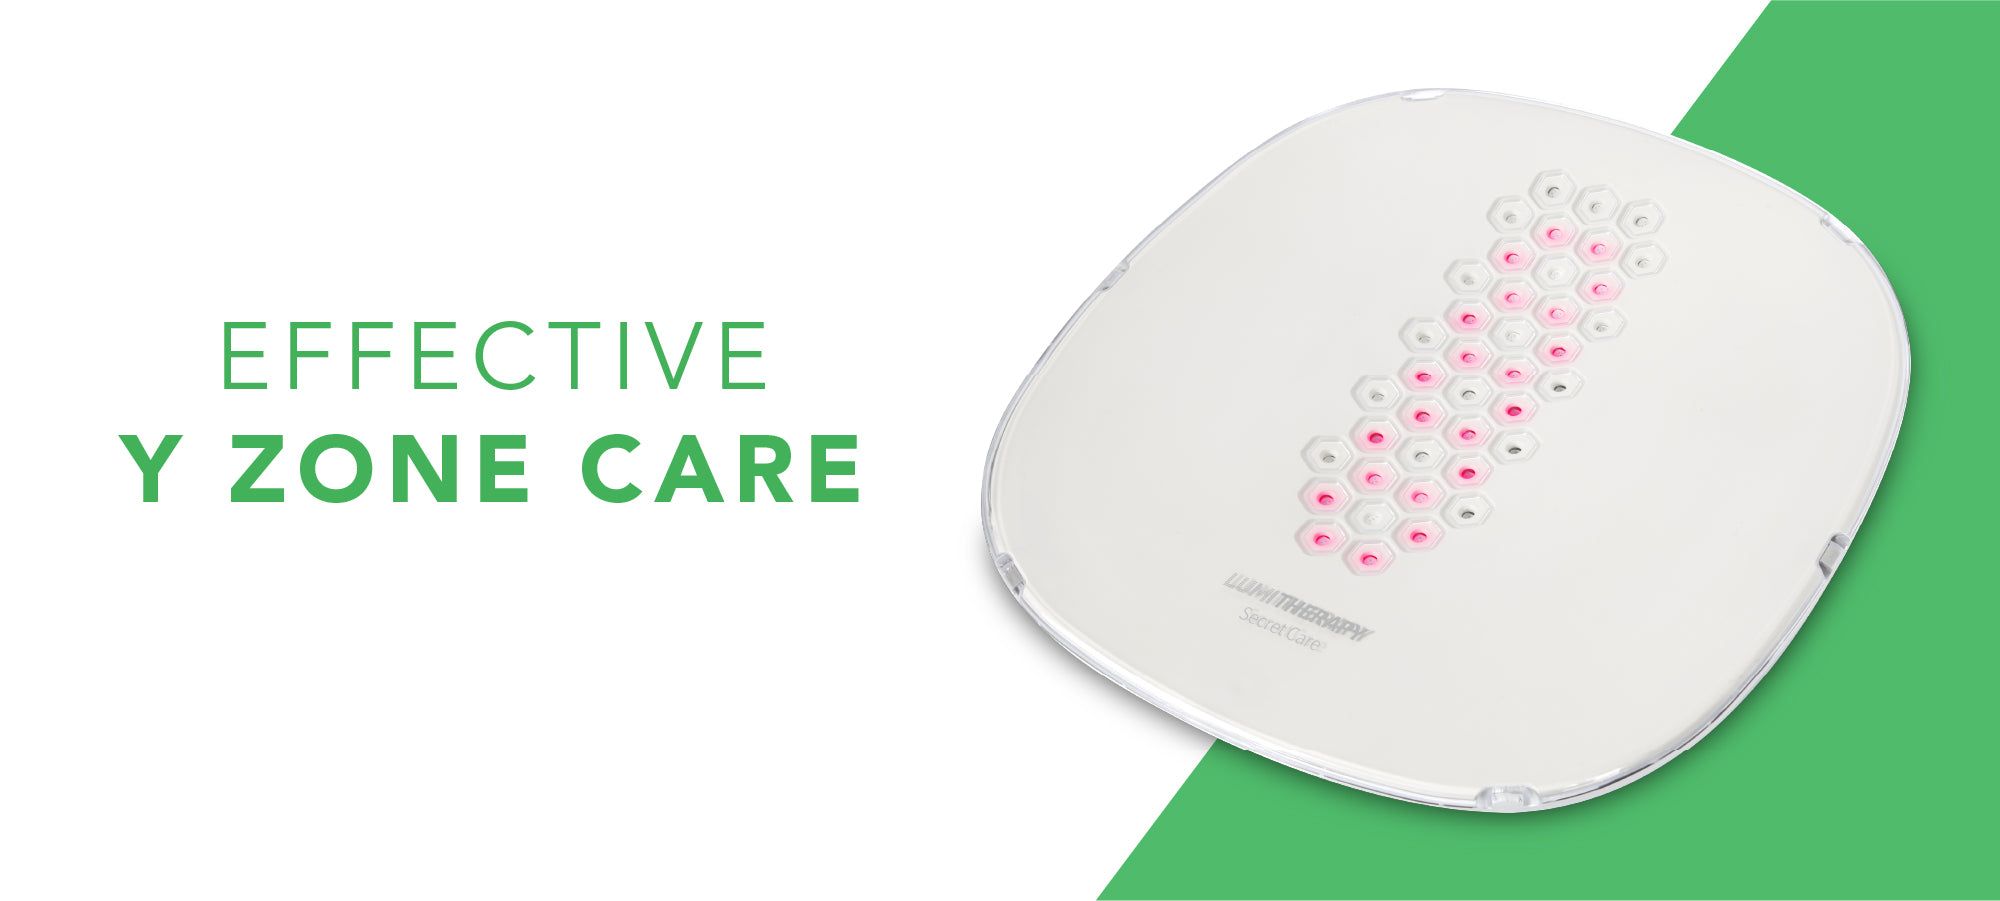 Effective Y Zone Care